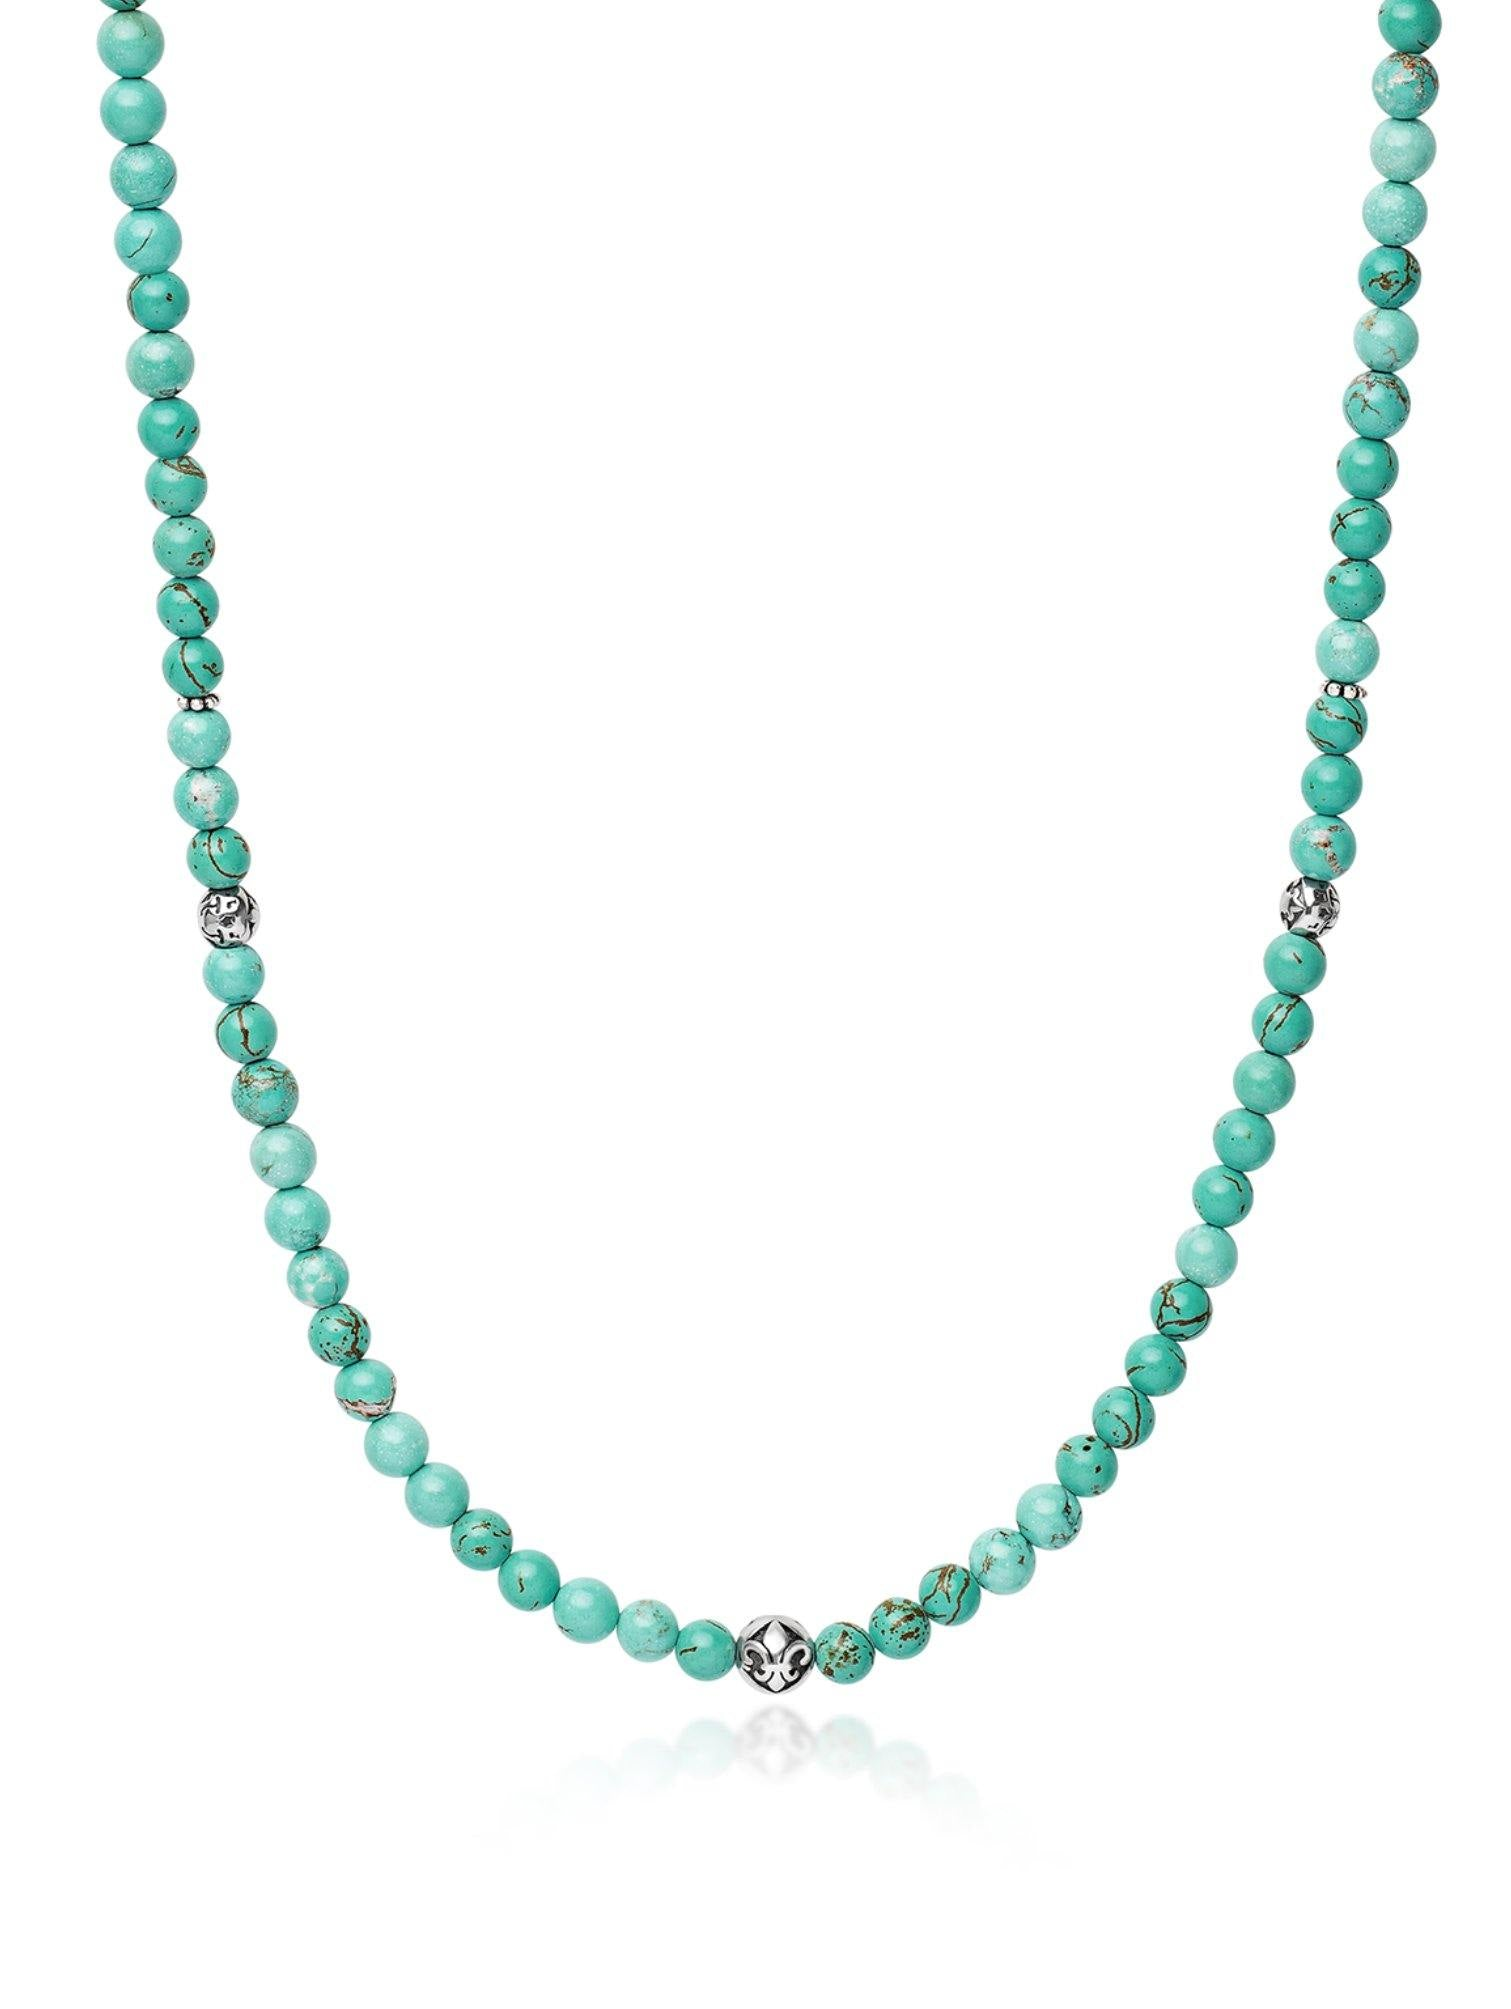 Men's Beaded Necklace With Turquoise and Silver - Nialaya Jewelry